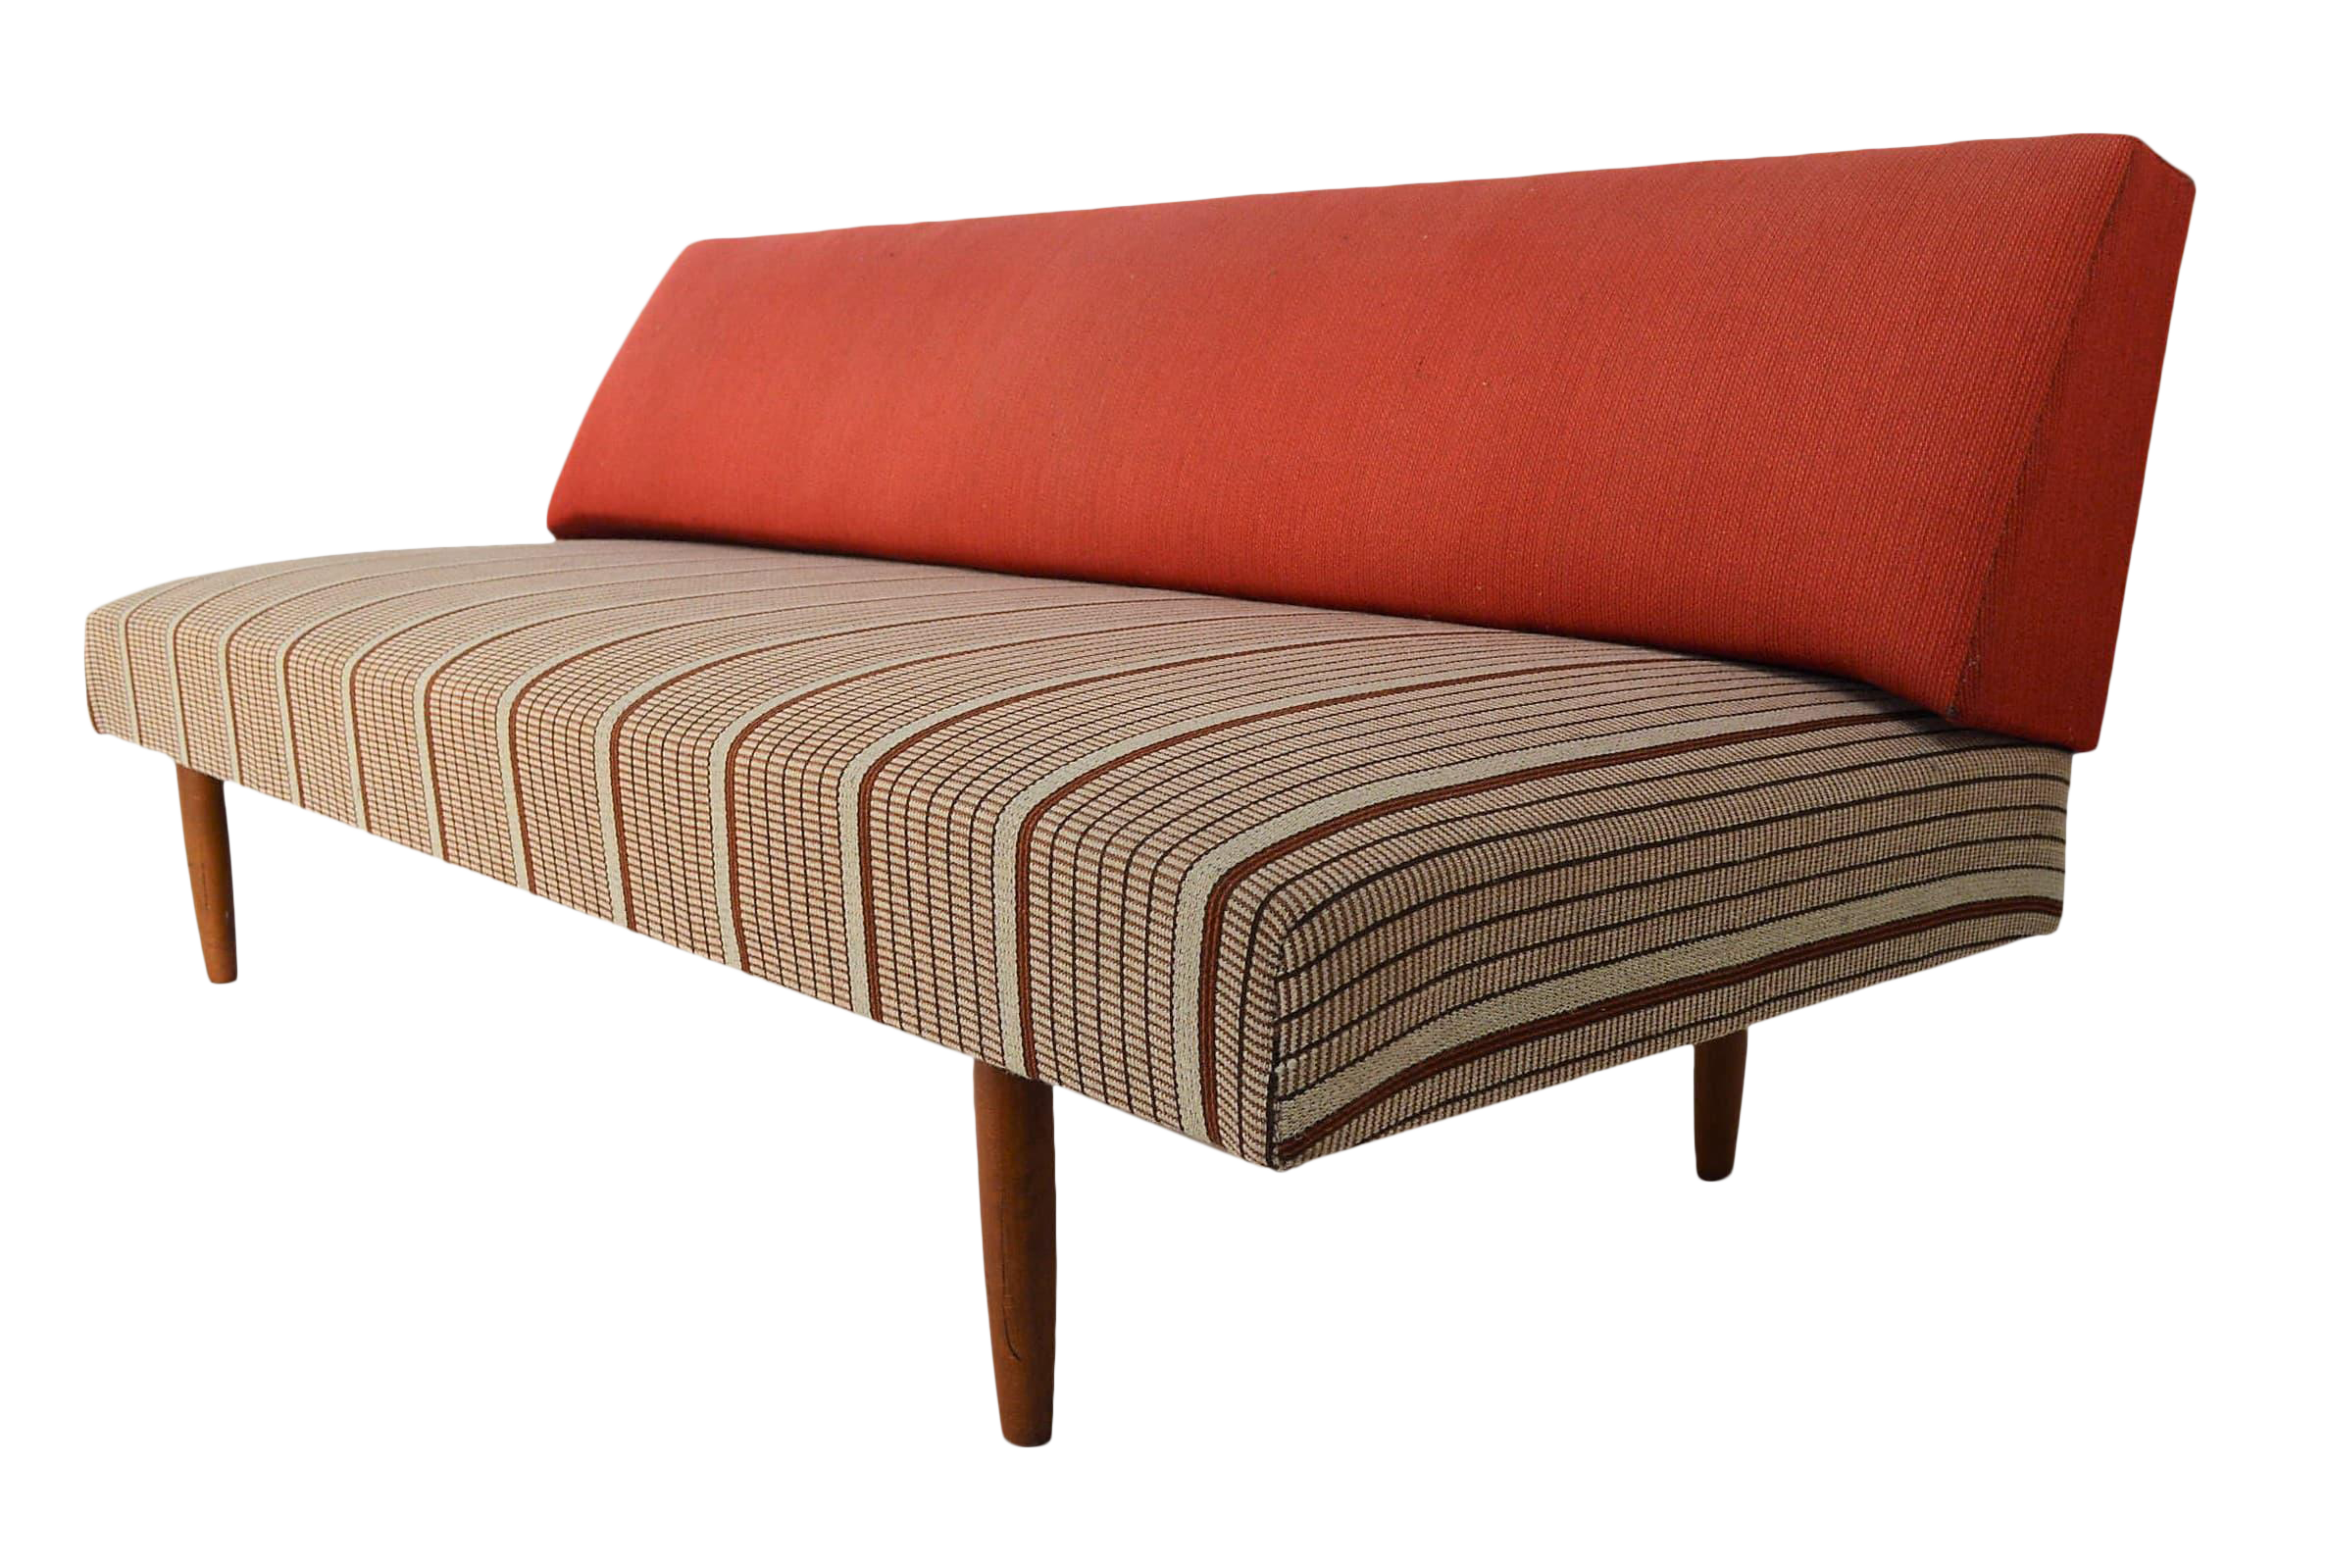 vintage knoll richard stein daybed sofa couch